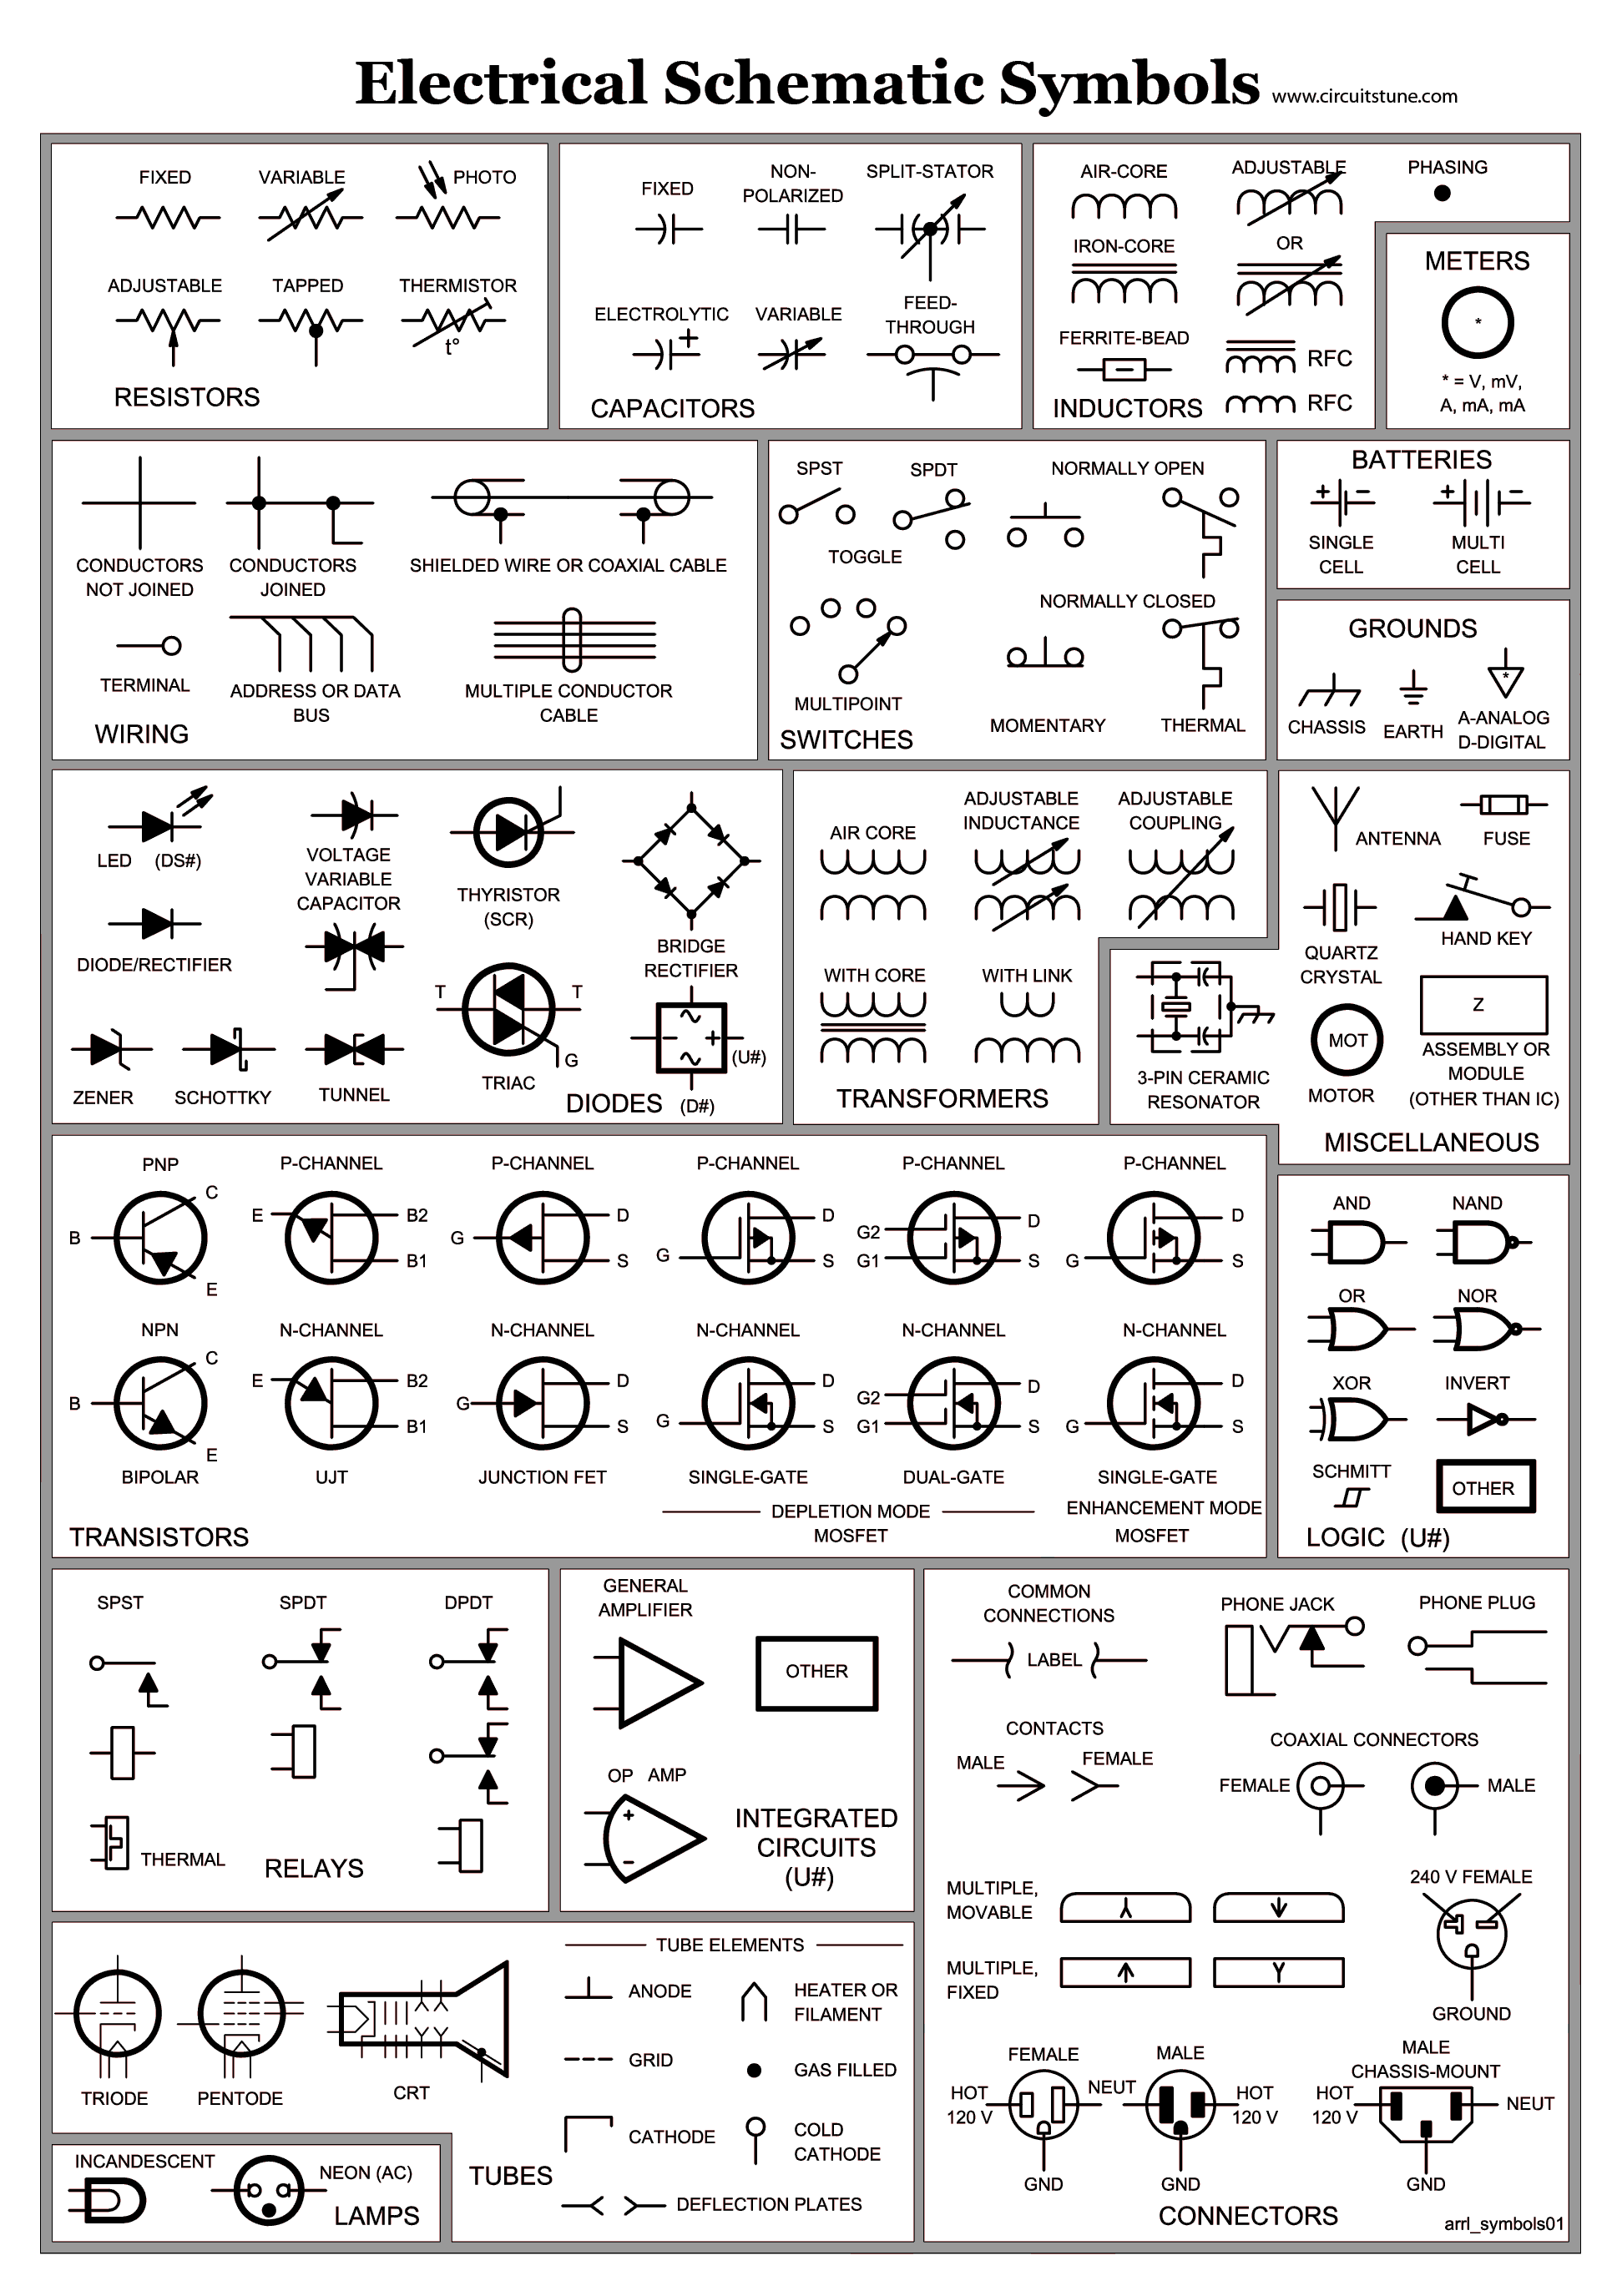 electrical schematic symbols skinsquiggles pinterest rh pinterest com reading a wiring diagram symbols